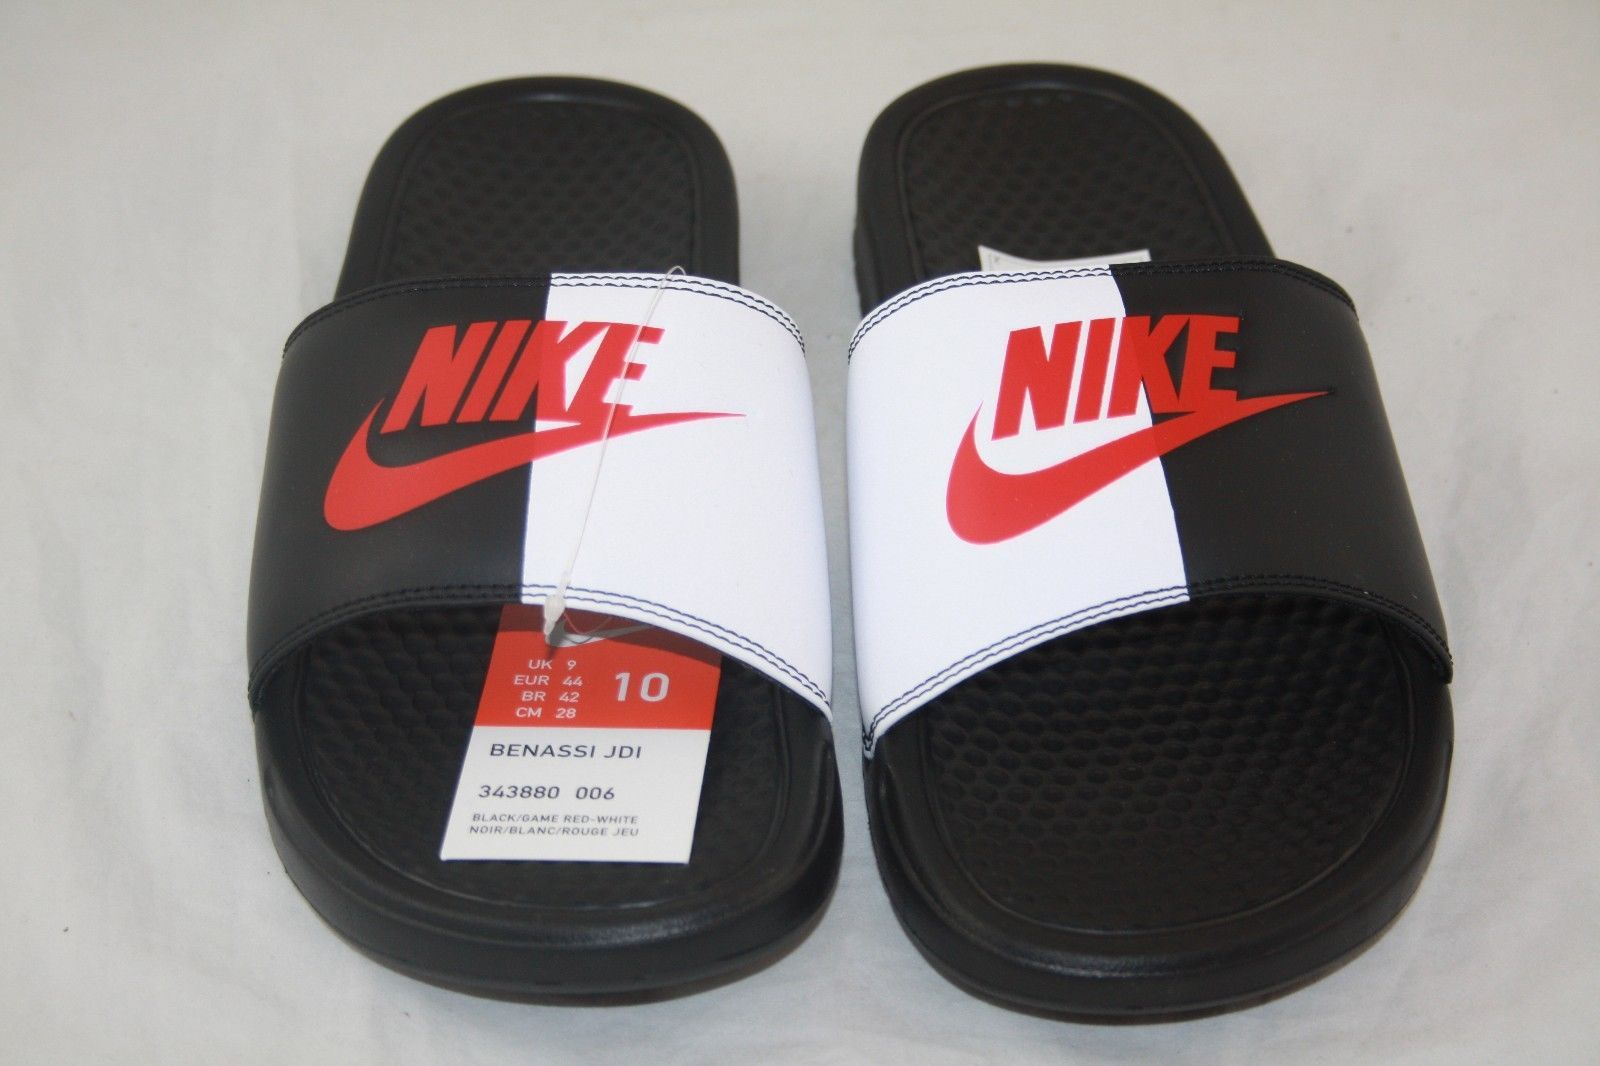 580d6040d95db New Nike BENASSI JDI Men s Black Game Red-White 343880-006 Slide Sandals